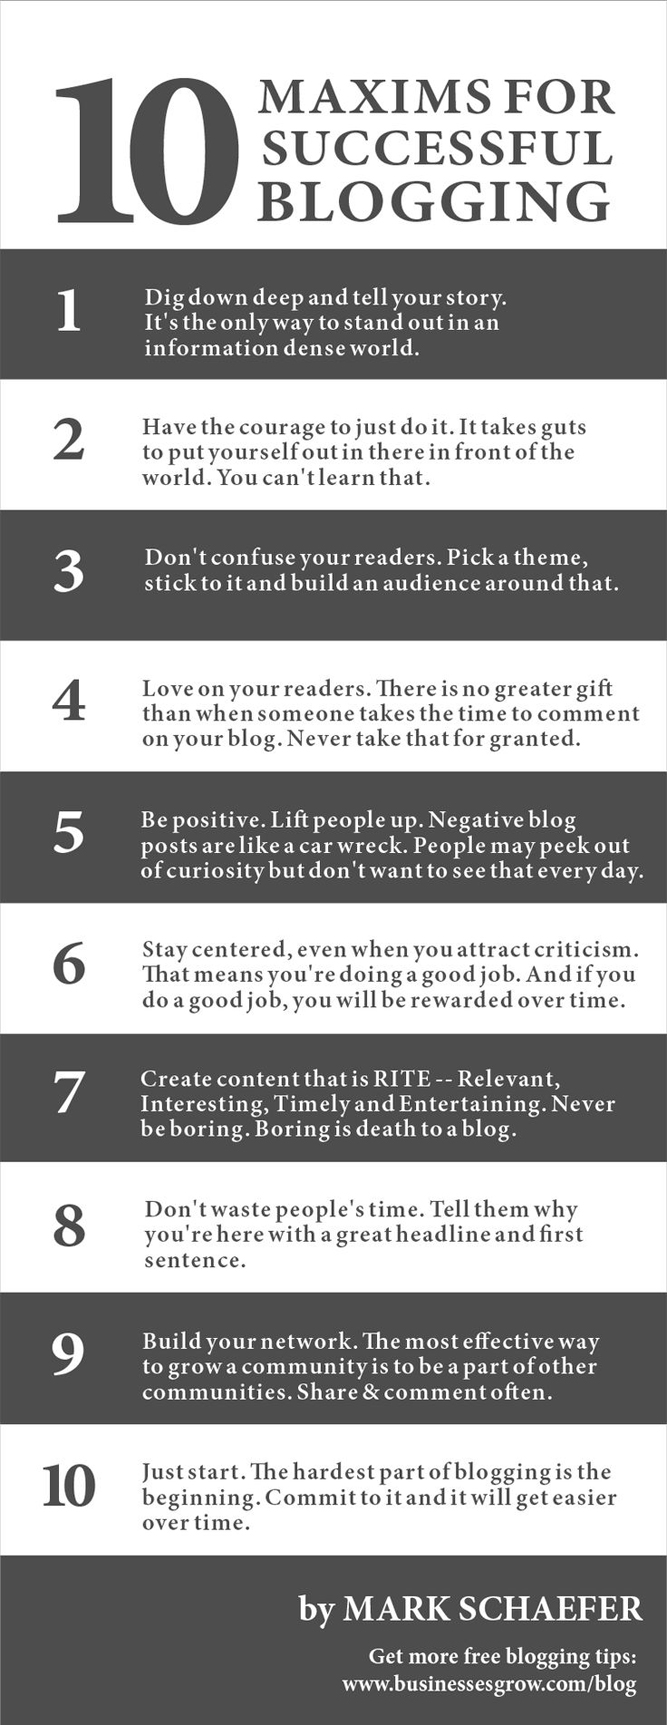 10 Important Things to Remember for Successful Blogging!